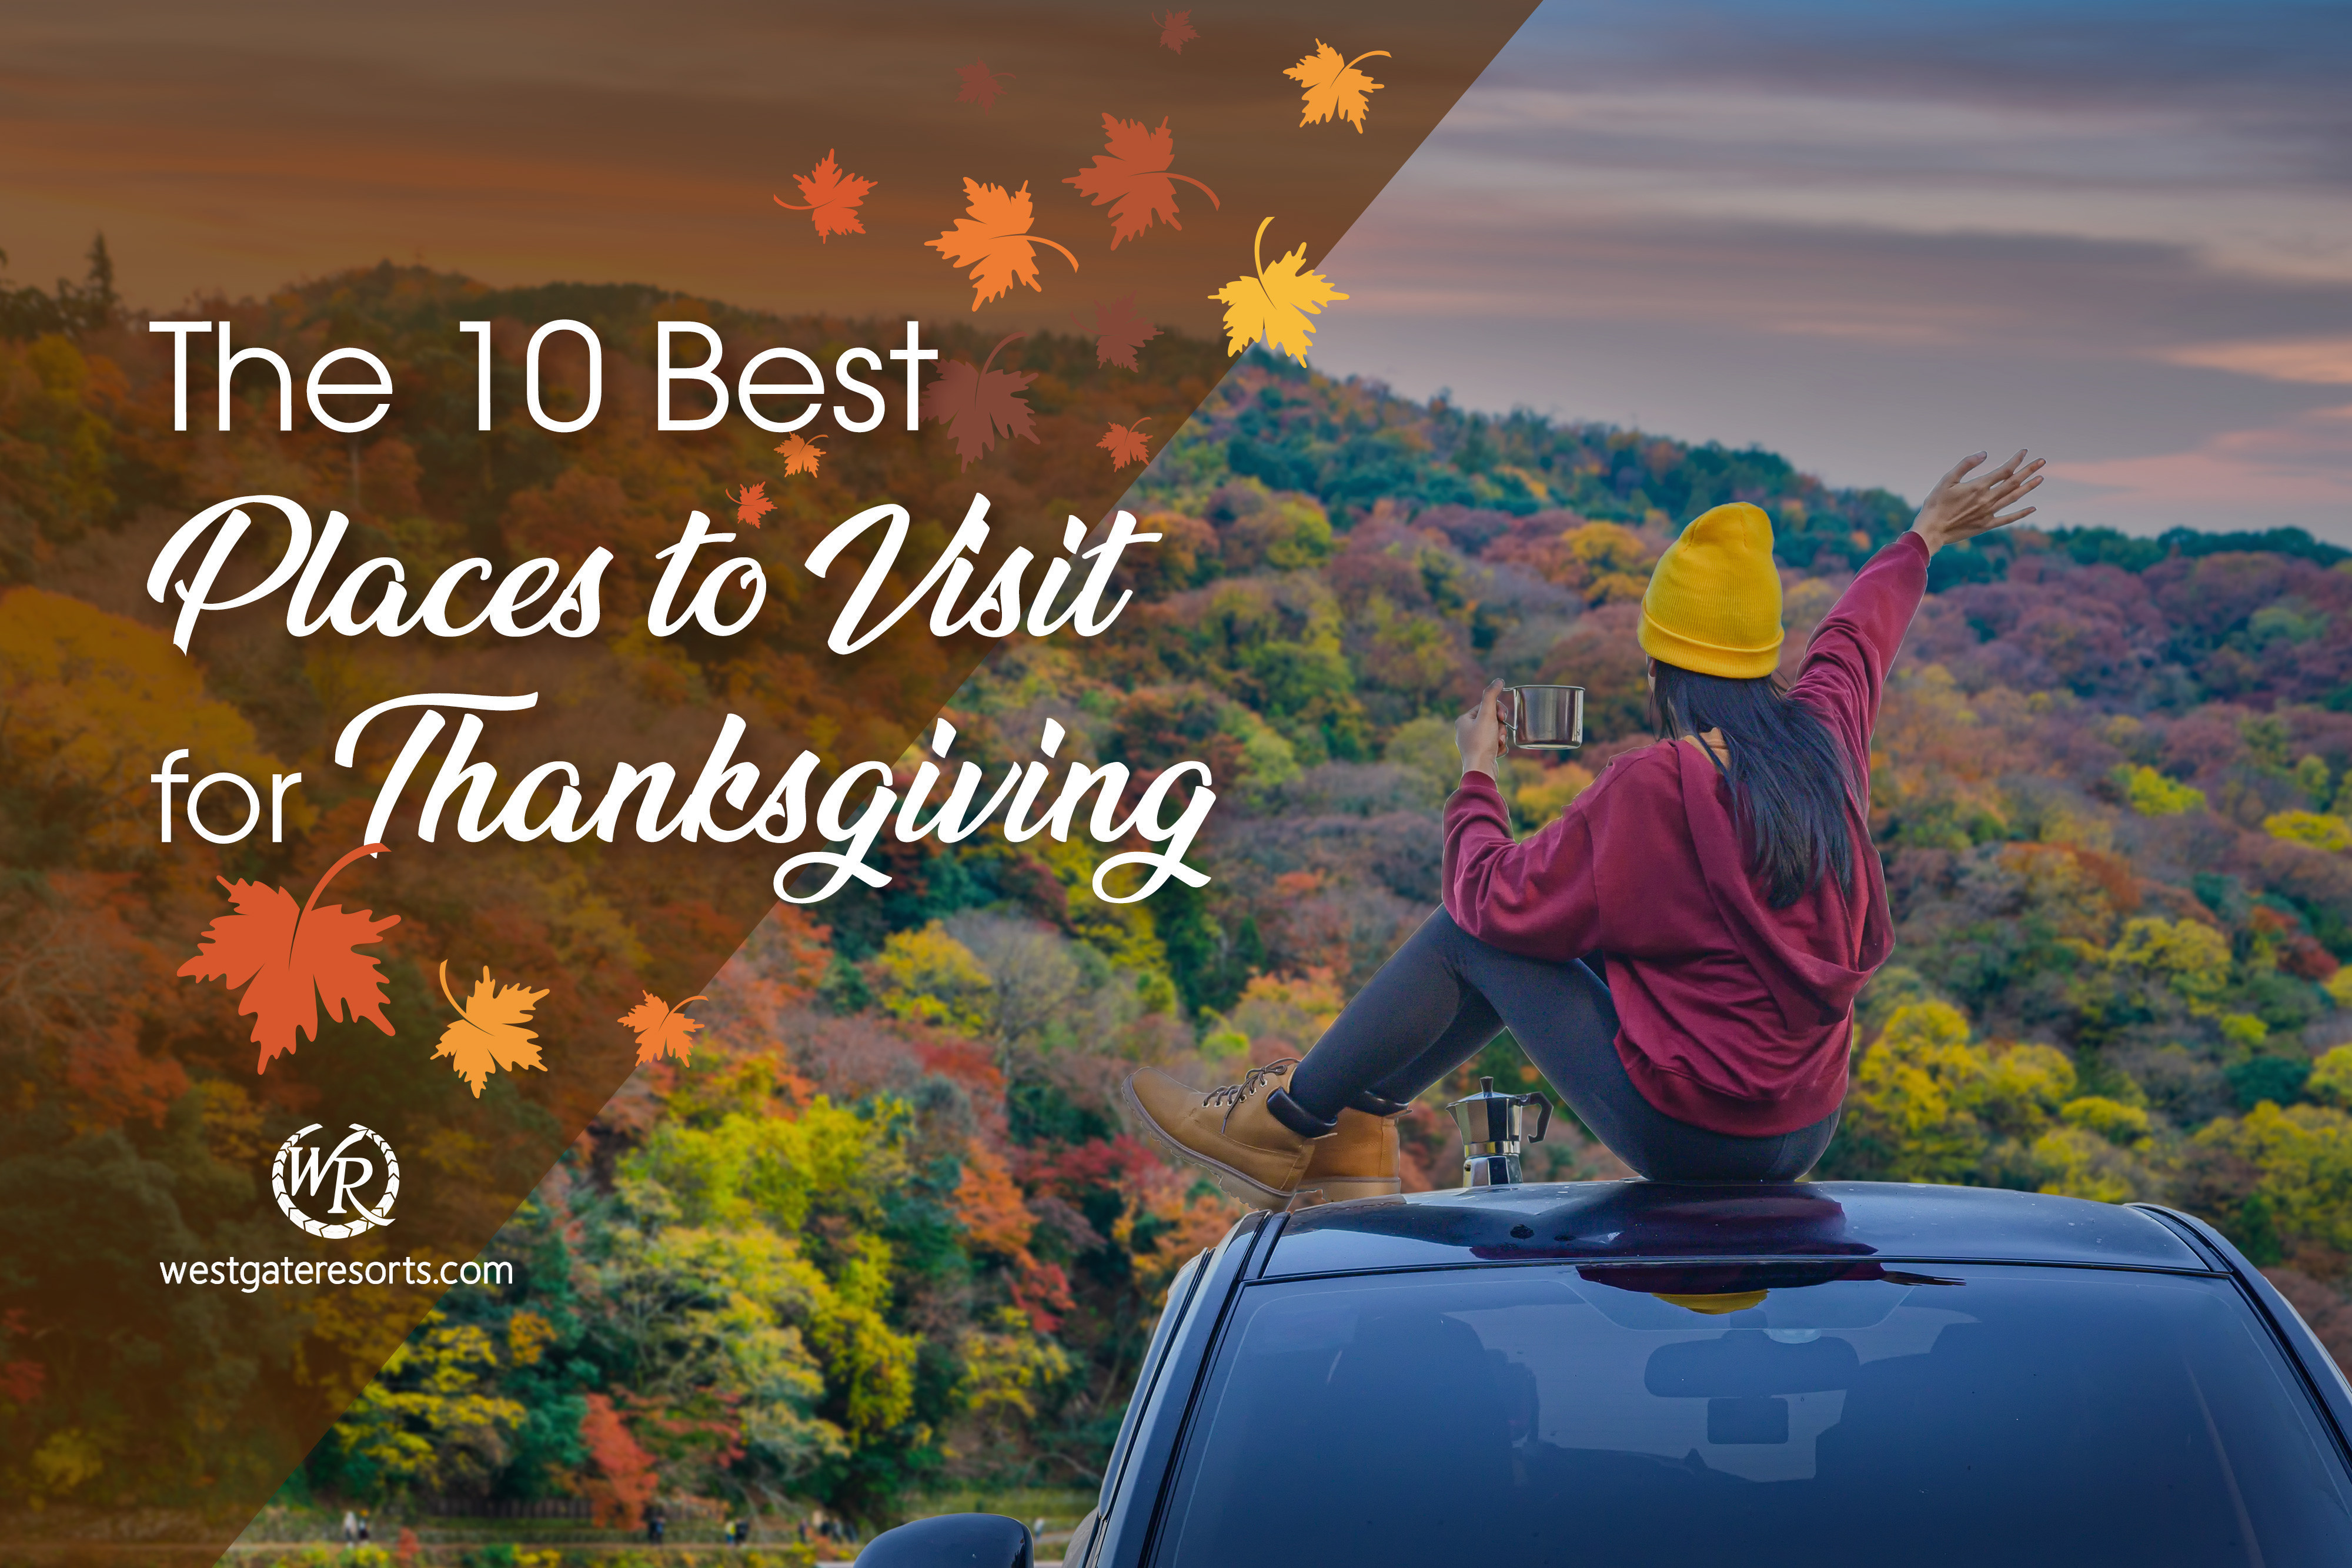 The 10 Best Places to Travel for Thanksgiving